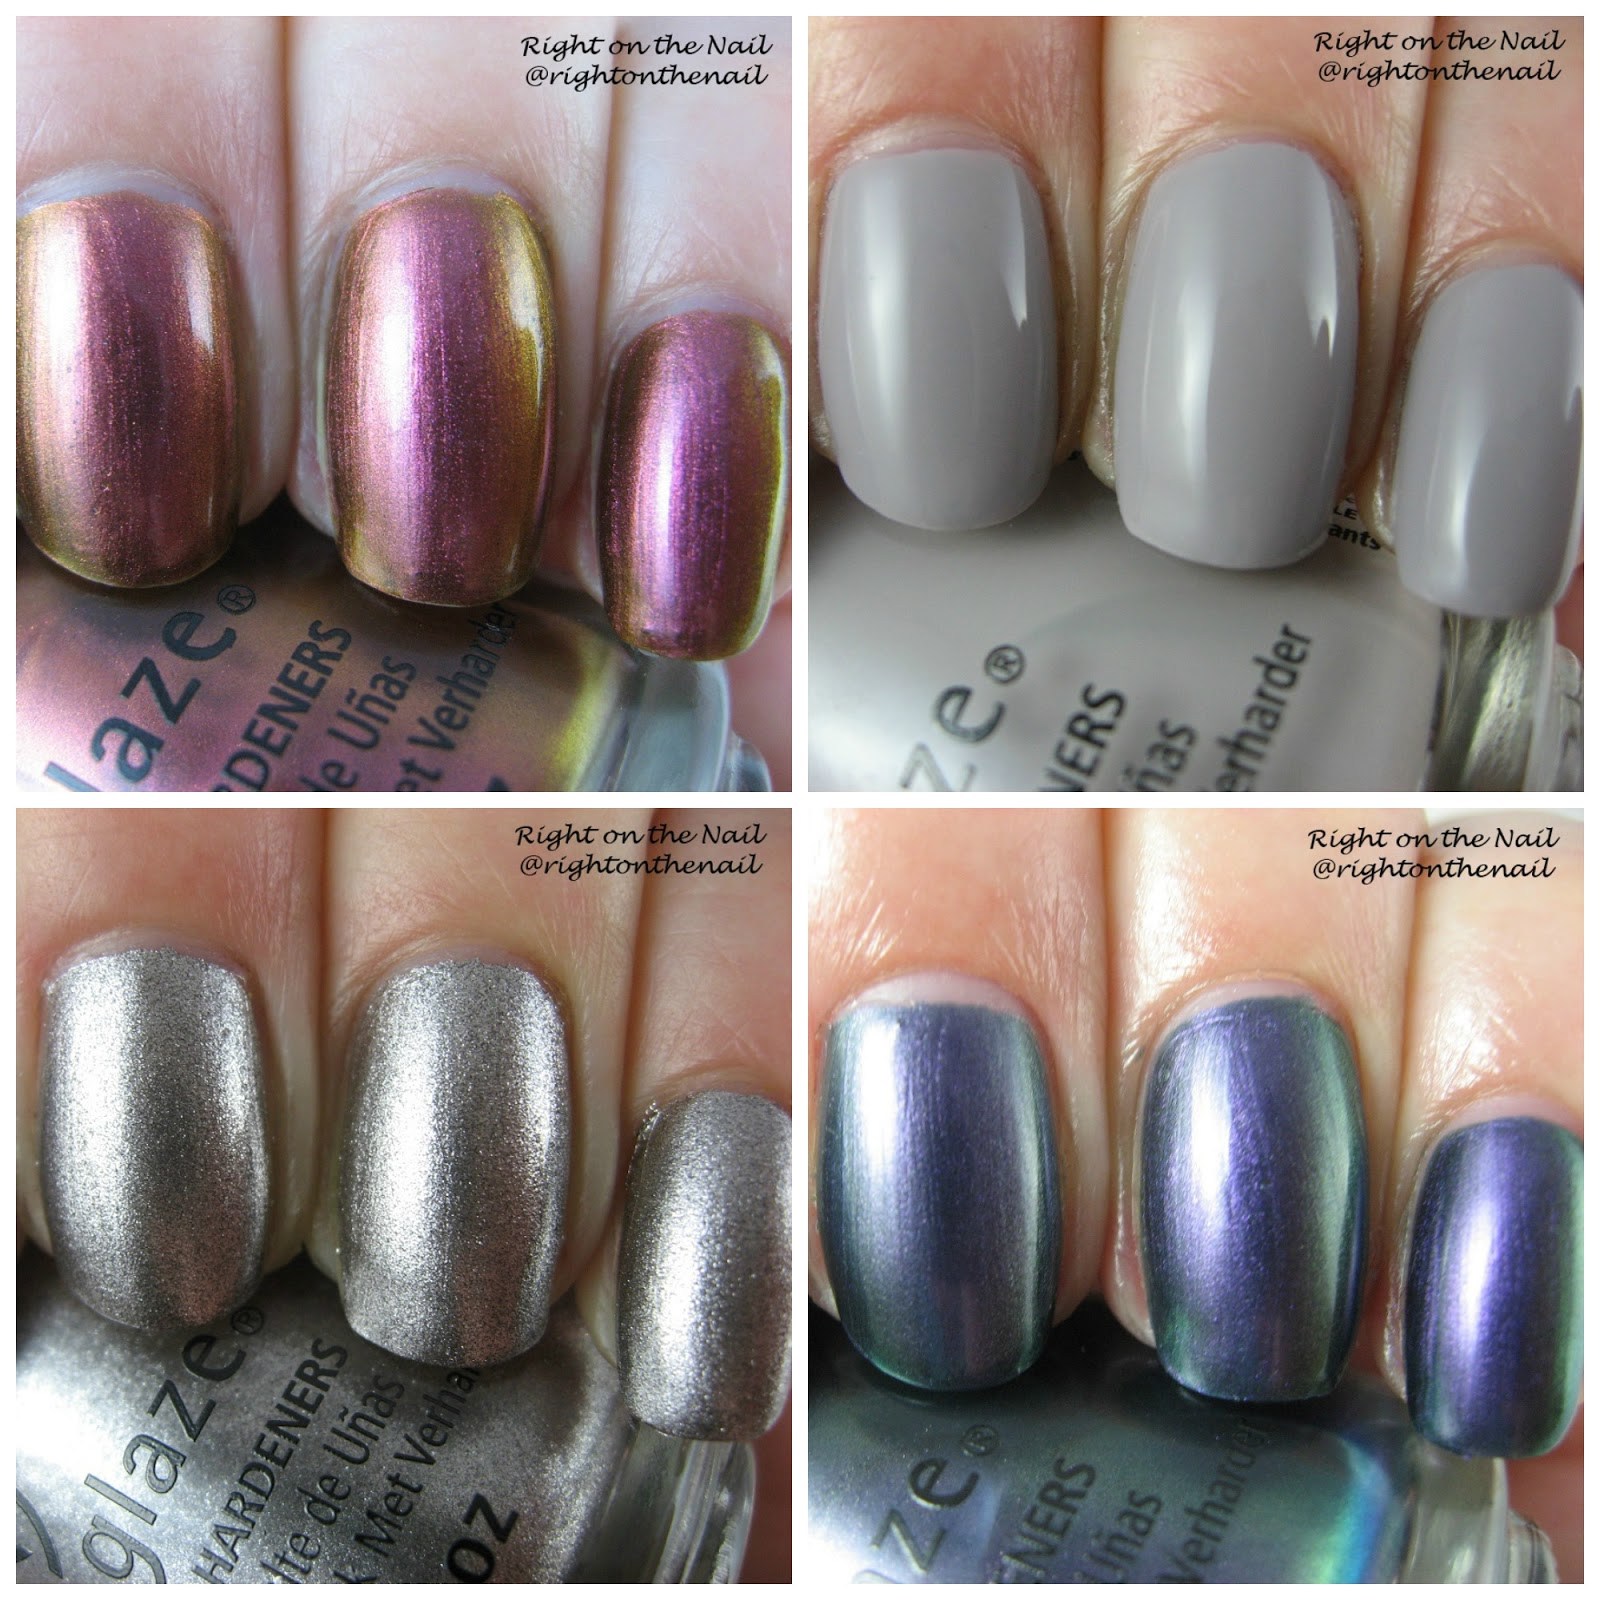 Right on the Nail: Right on the Nail ~ China Glaze Fall 2015 The ...